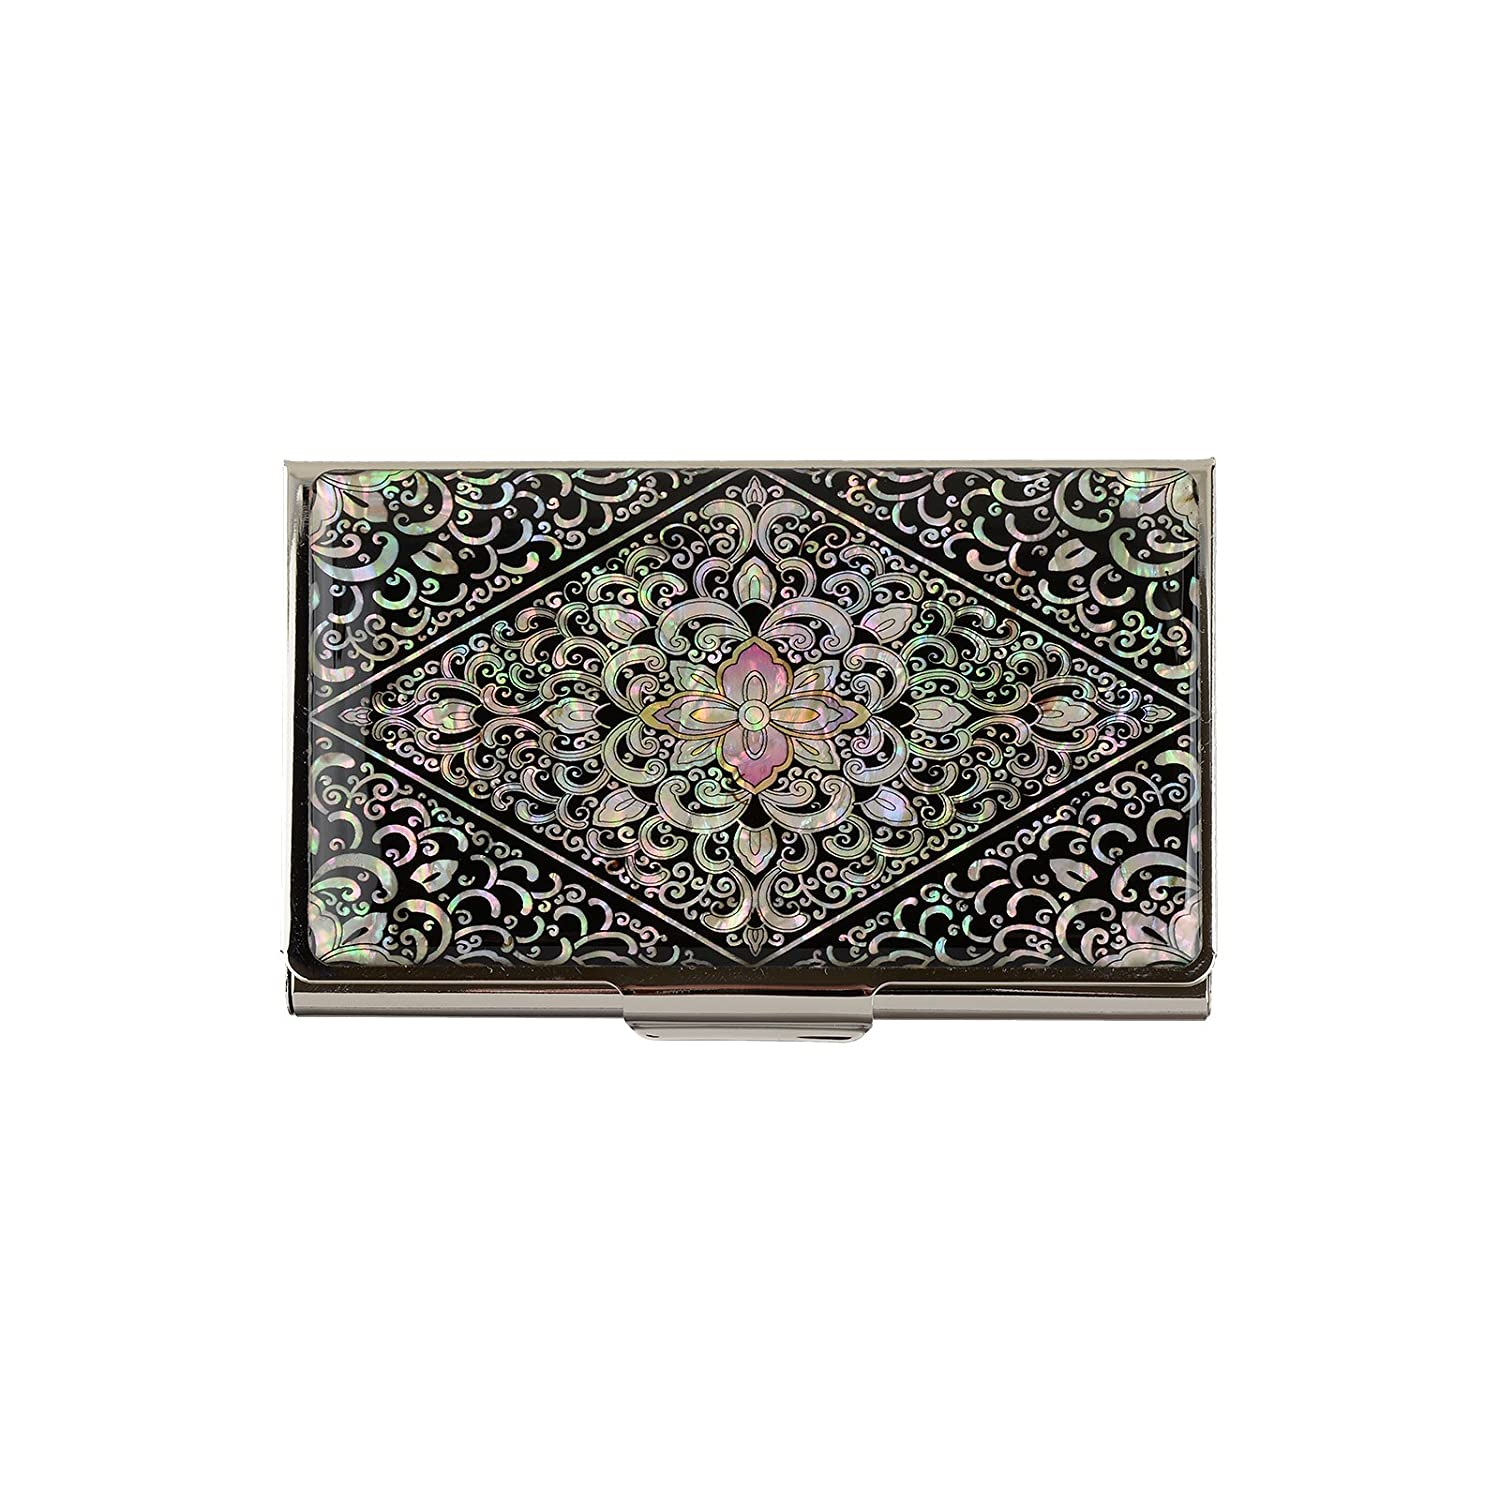 business name card holder stainless steel case Mother of Pearl Art Arabesque Yemun